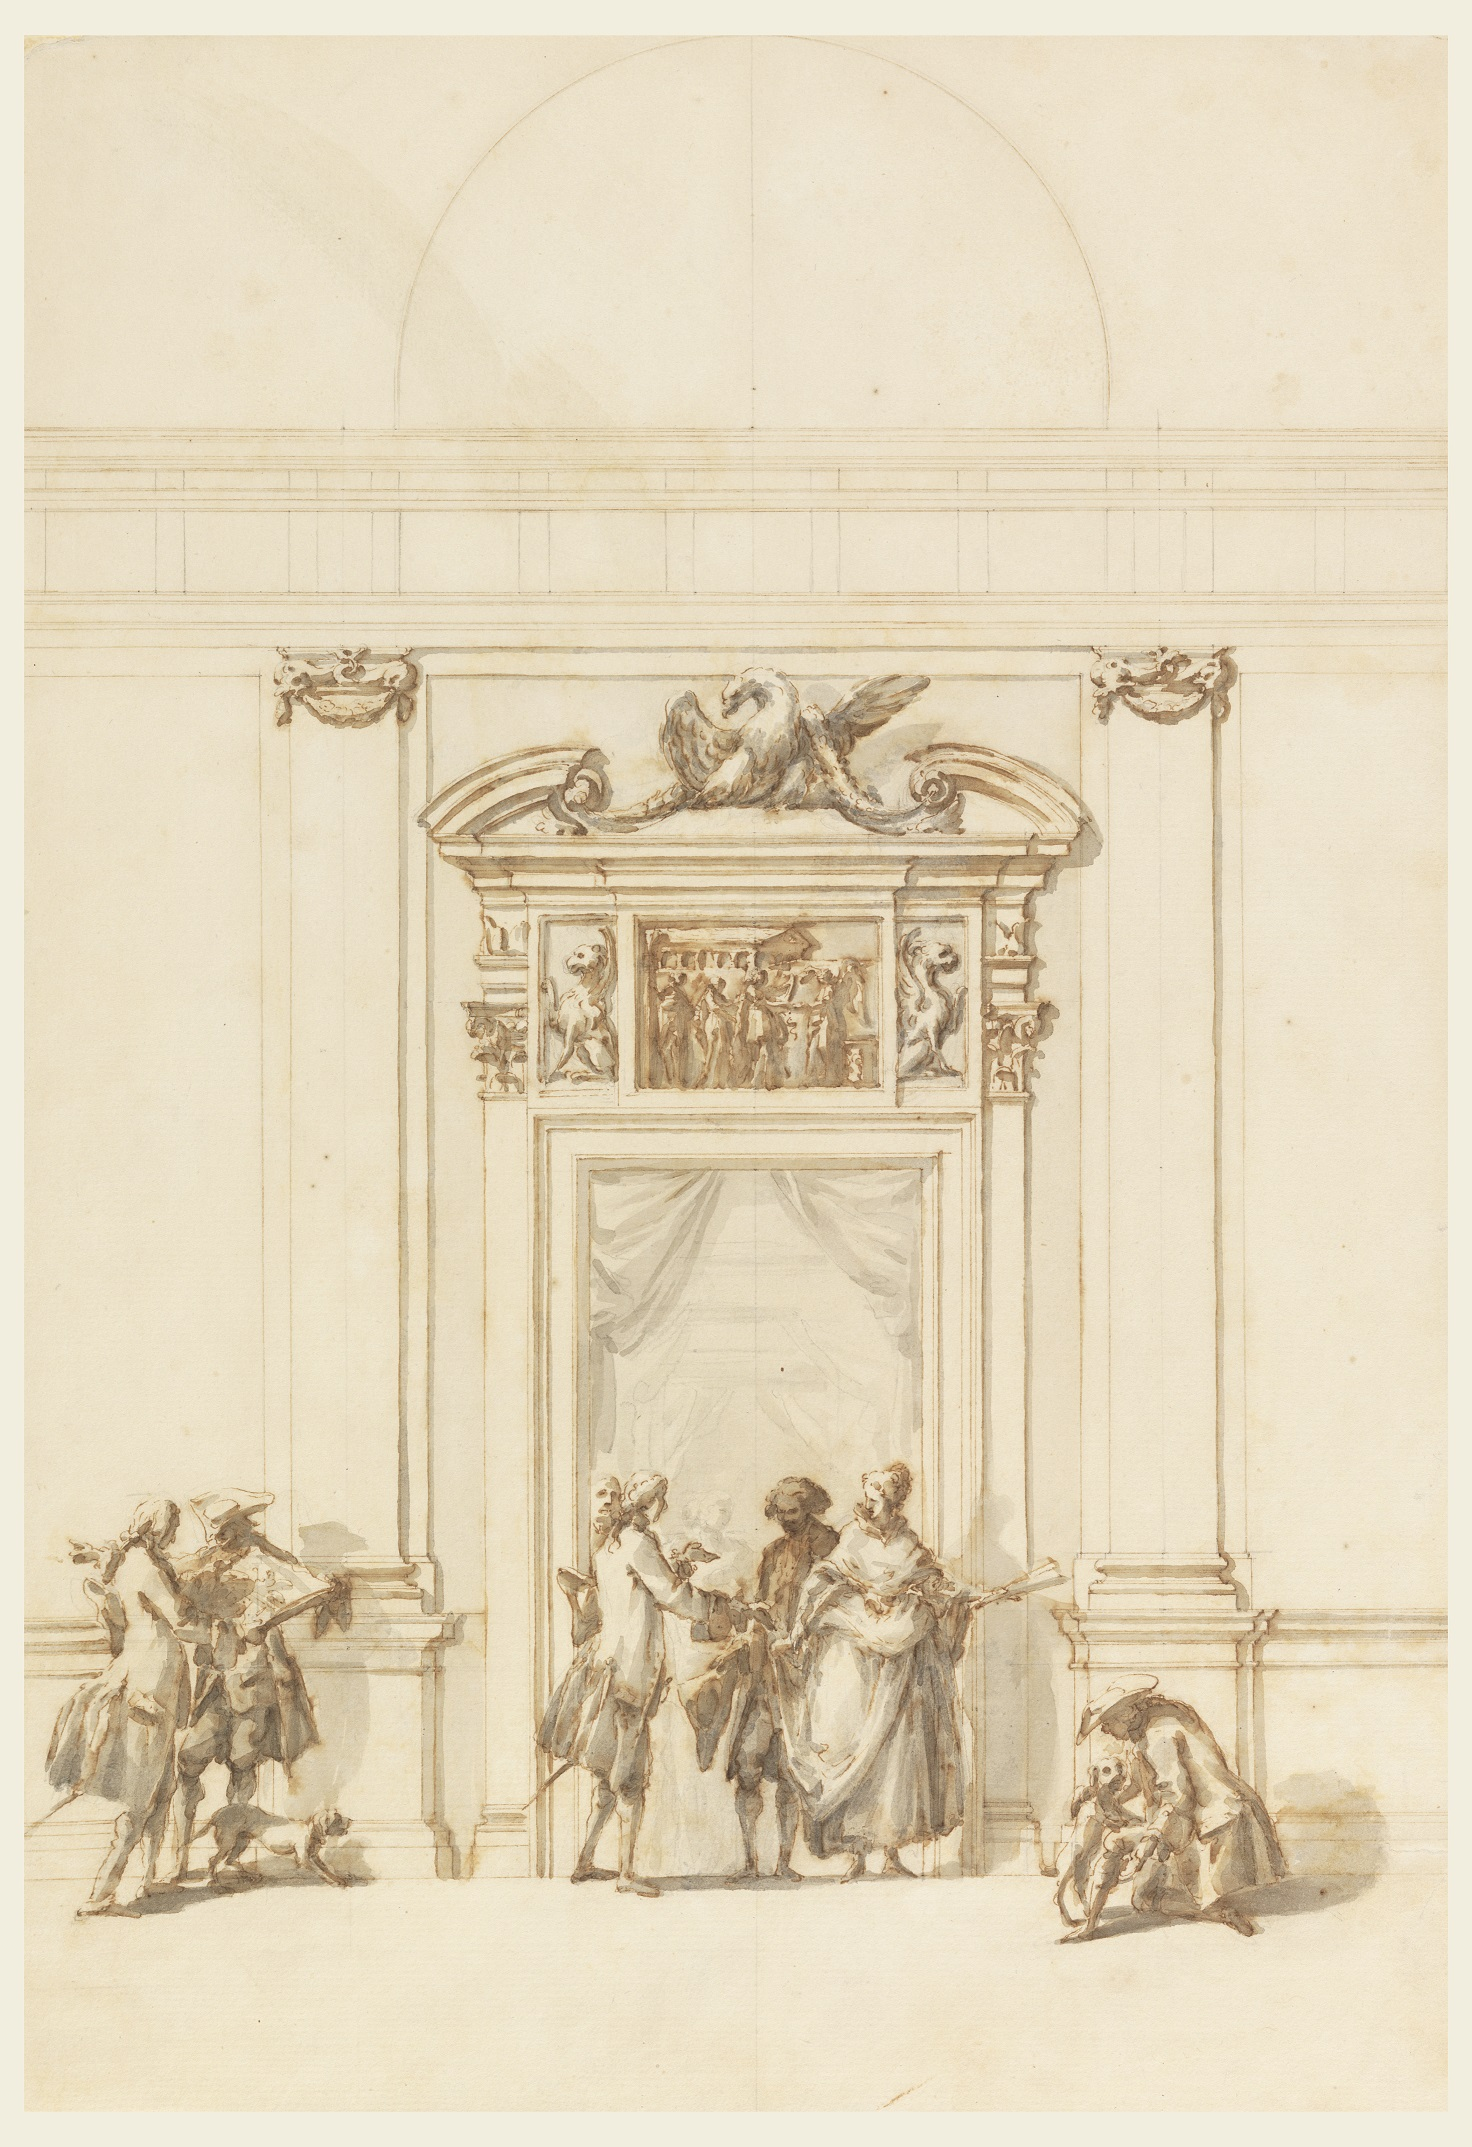 Drawing, Design for a Doorway in the Villa Albani, Rome, 1755-1756; Designed by Carlo Marchionni (Italian, 1702-1786); Pen and brown ink, brush with brown and grey wash, graphite on cream laid paper; 16 7/16 x 11 3/8 in. (417 x 289mm); Museum purchase through gift of various donors, 1901-39-2178; Cooper Hewitt, Smithsonian Museum; Matt Flynn © Smithsonian Institution.